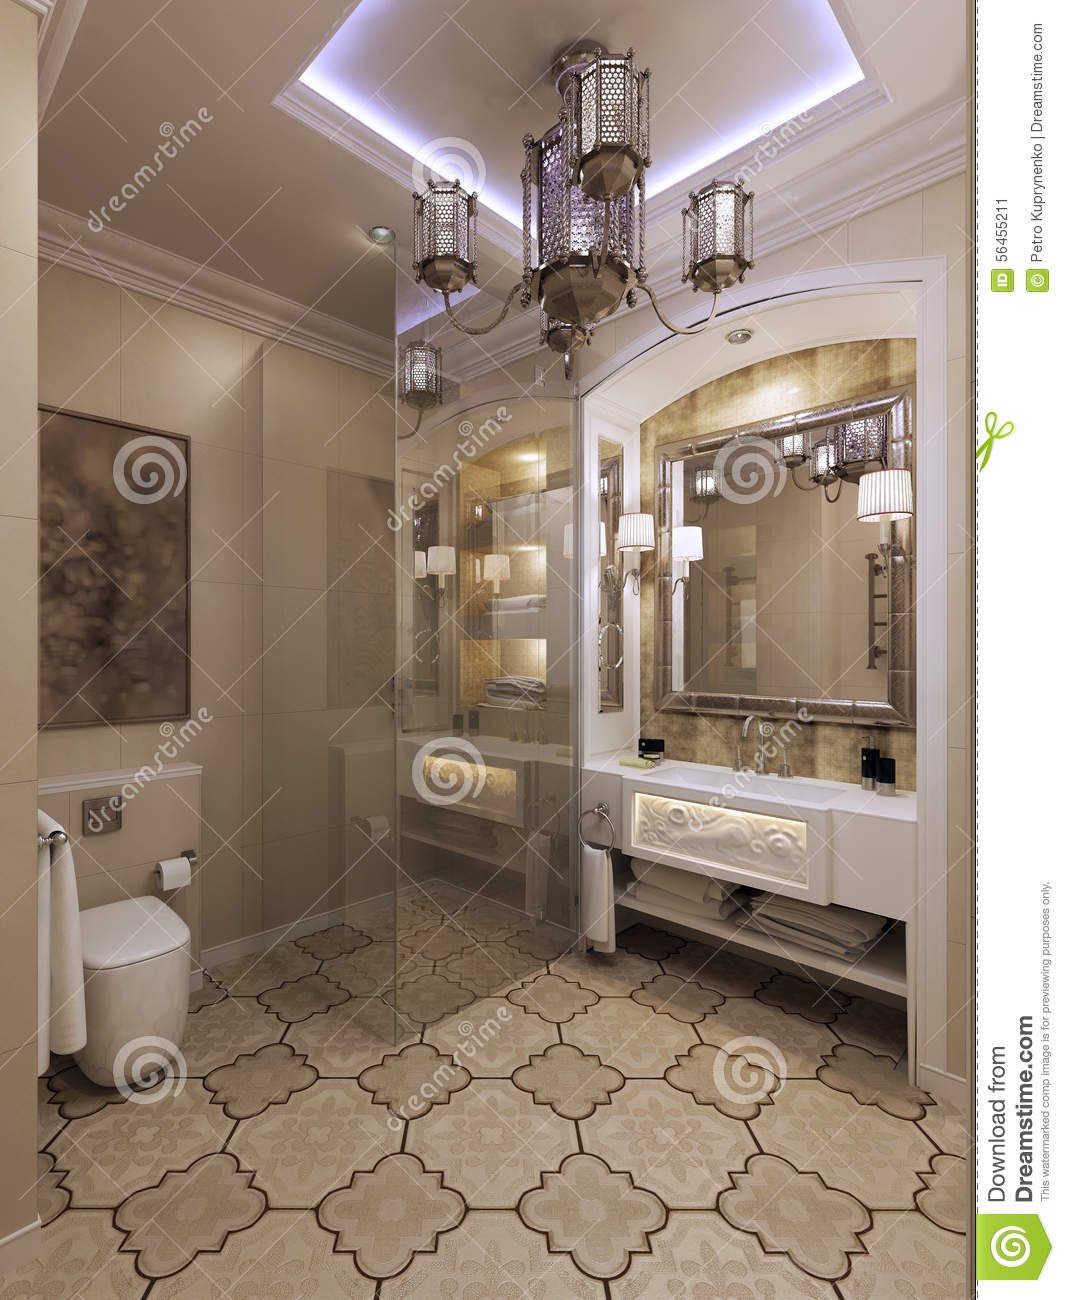 Baños Estilo Marroqui:Arabic Moroccan Style Bathroom Designs